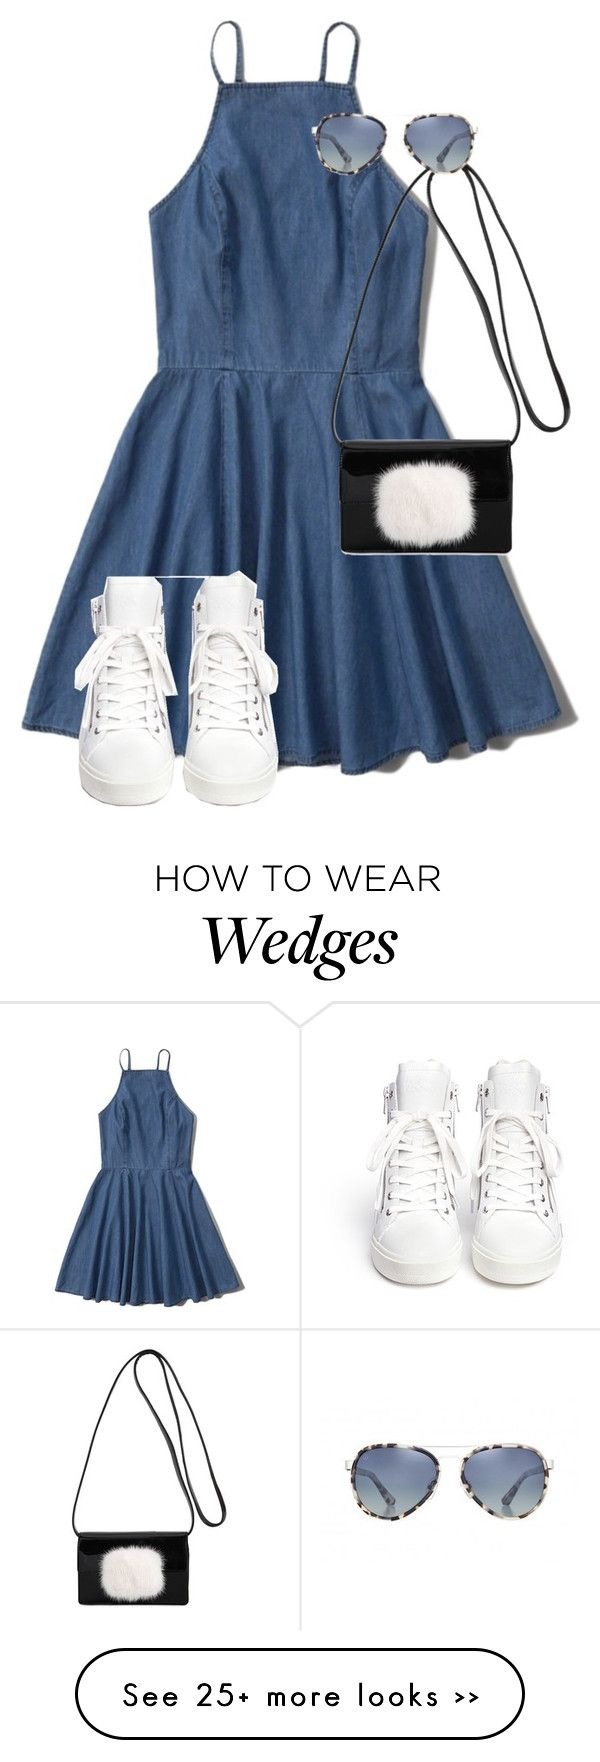 """Untitled #9084"" by alexsrogers on Polyvore"